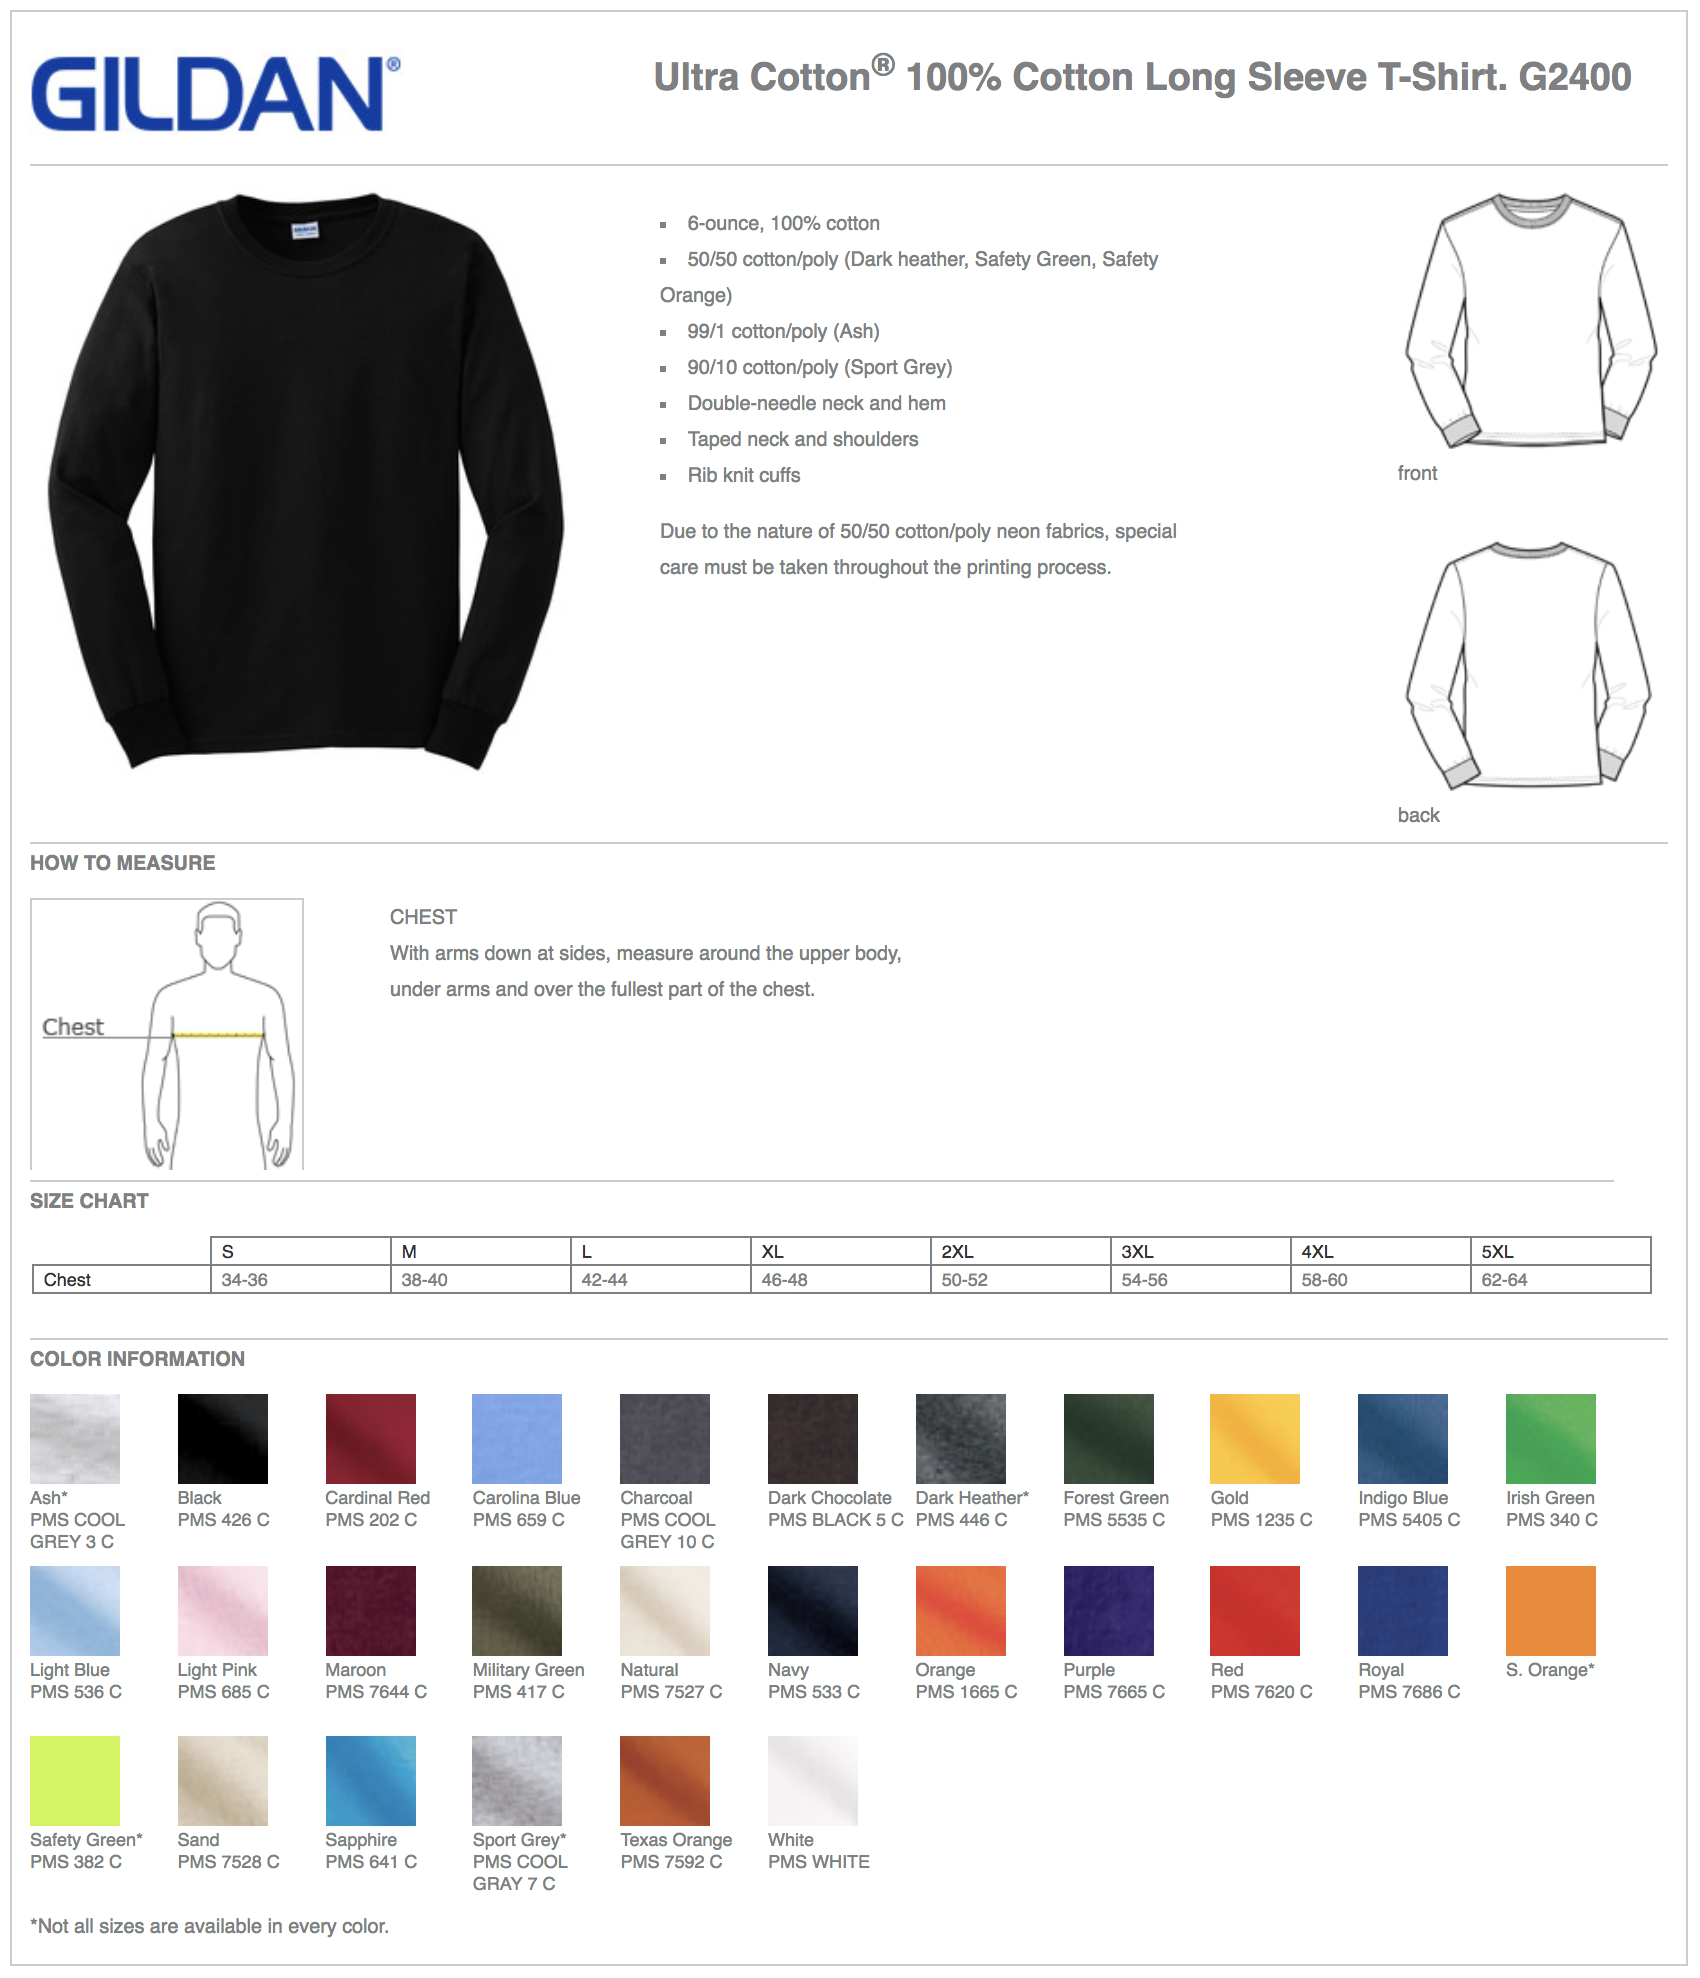 Gildan 2400 Custom Long Sleeve T-Shirts